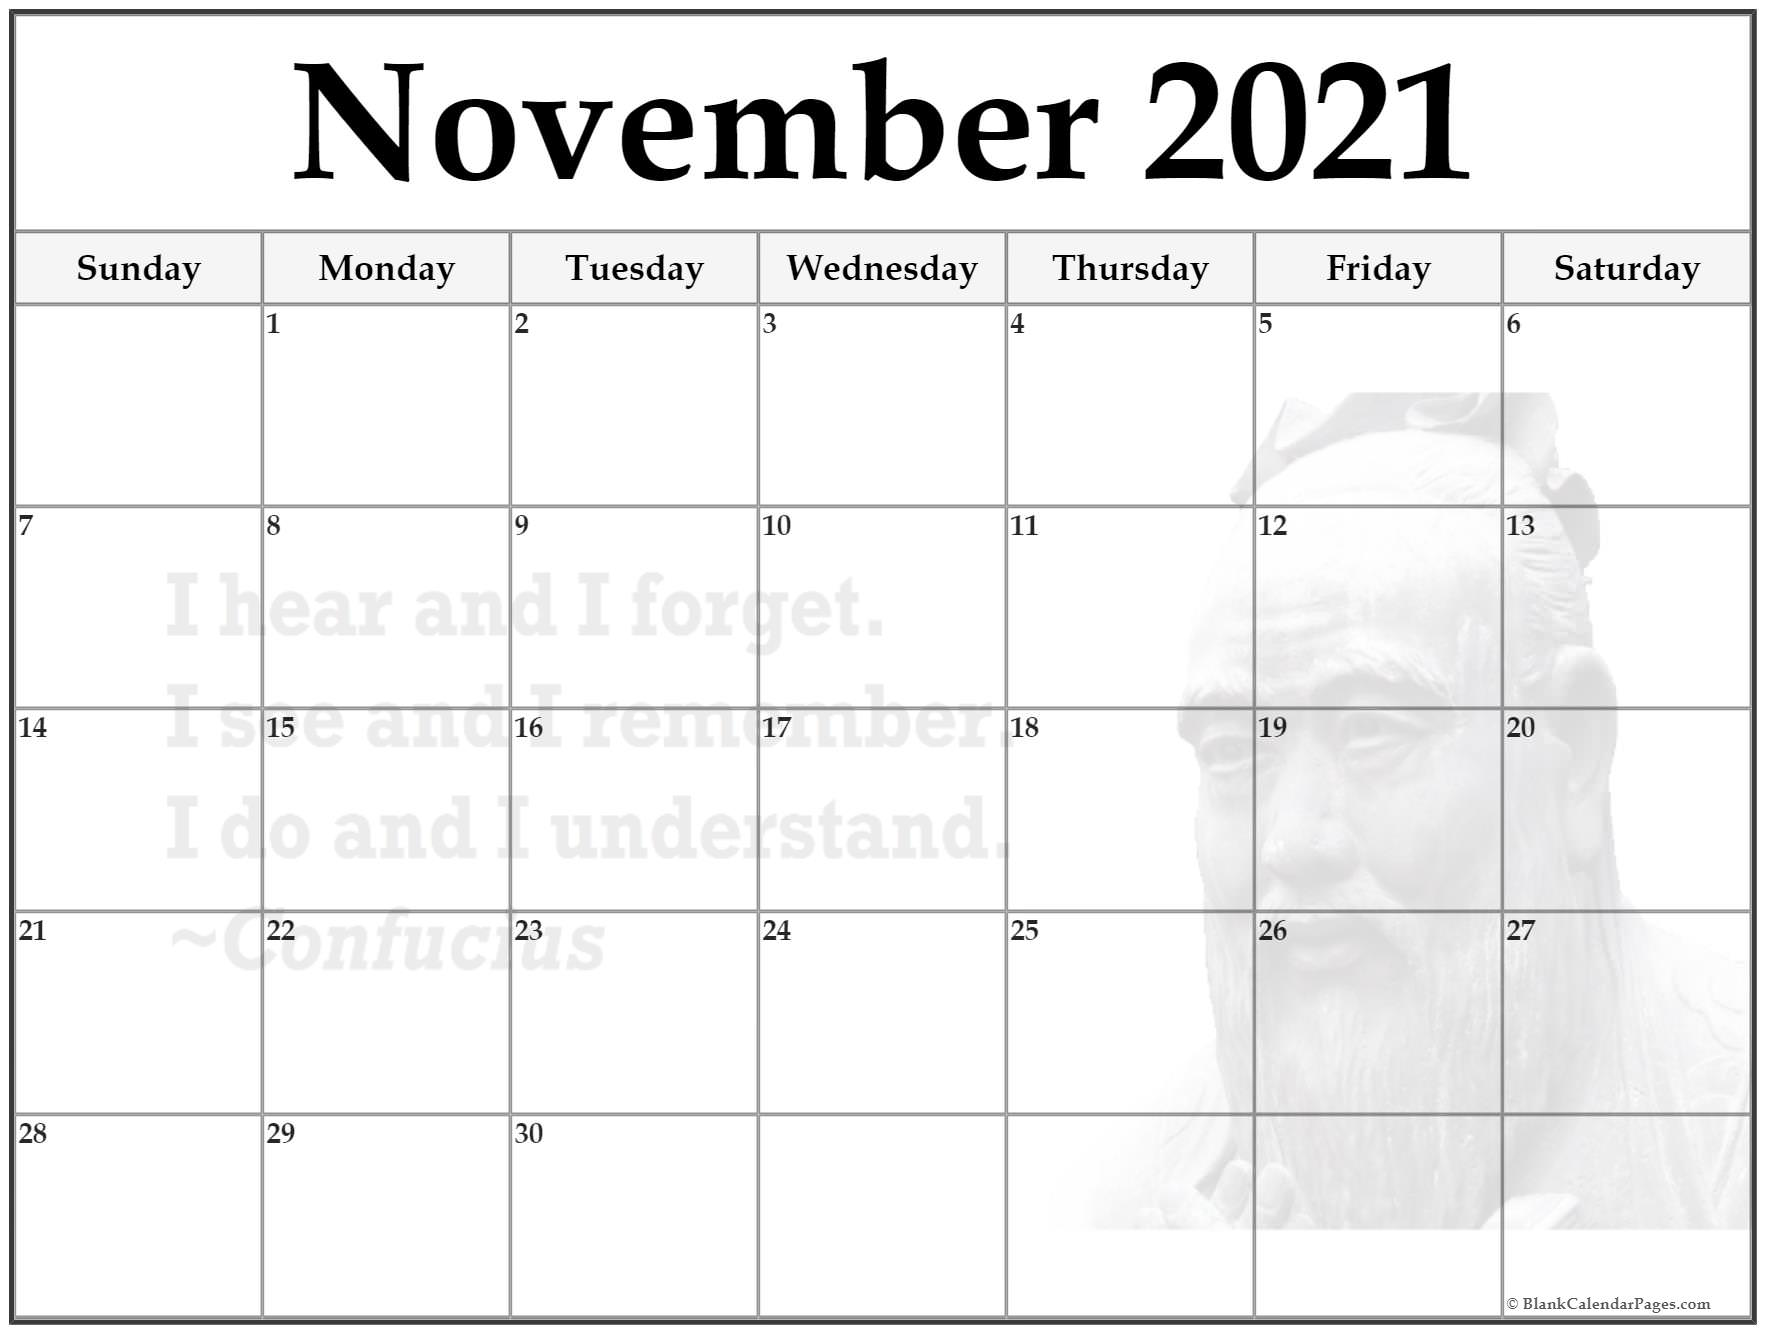 November 2019 monthly calendar template. I hear and I forget.I see and I remember.I do and I understand.~Confucius